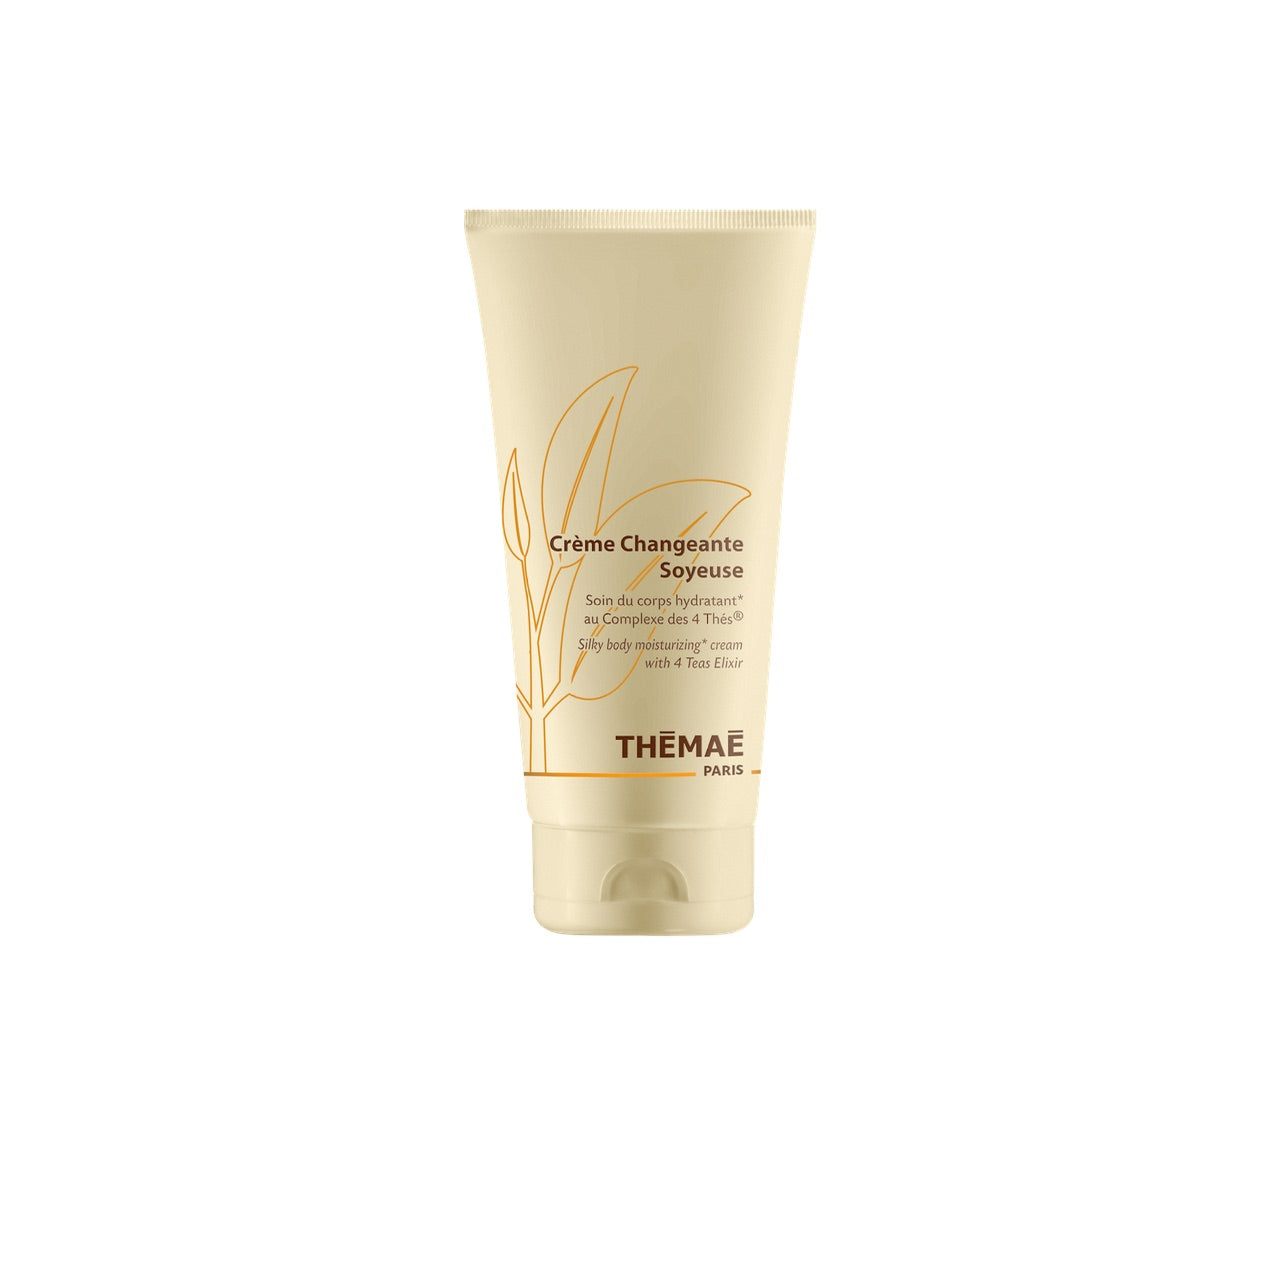 THEMAE Moisturizing body cream